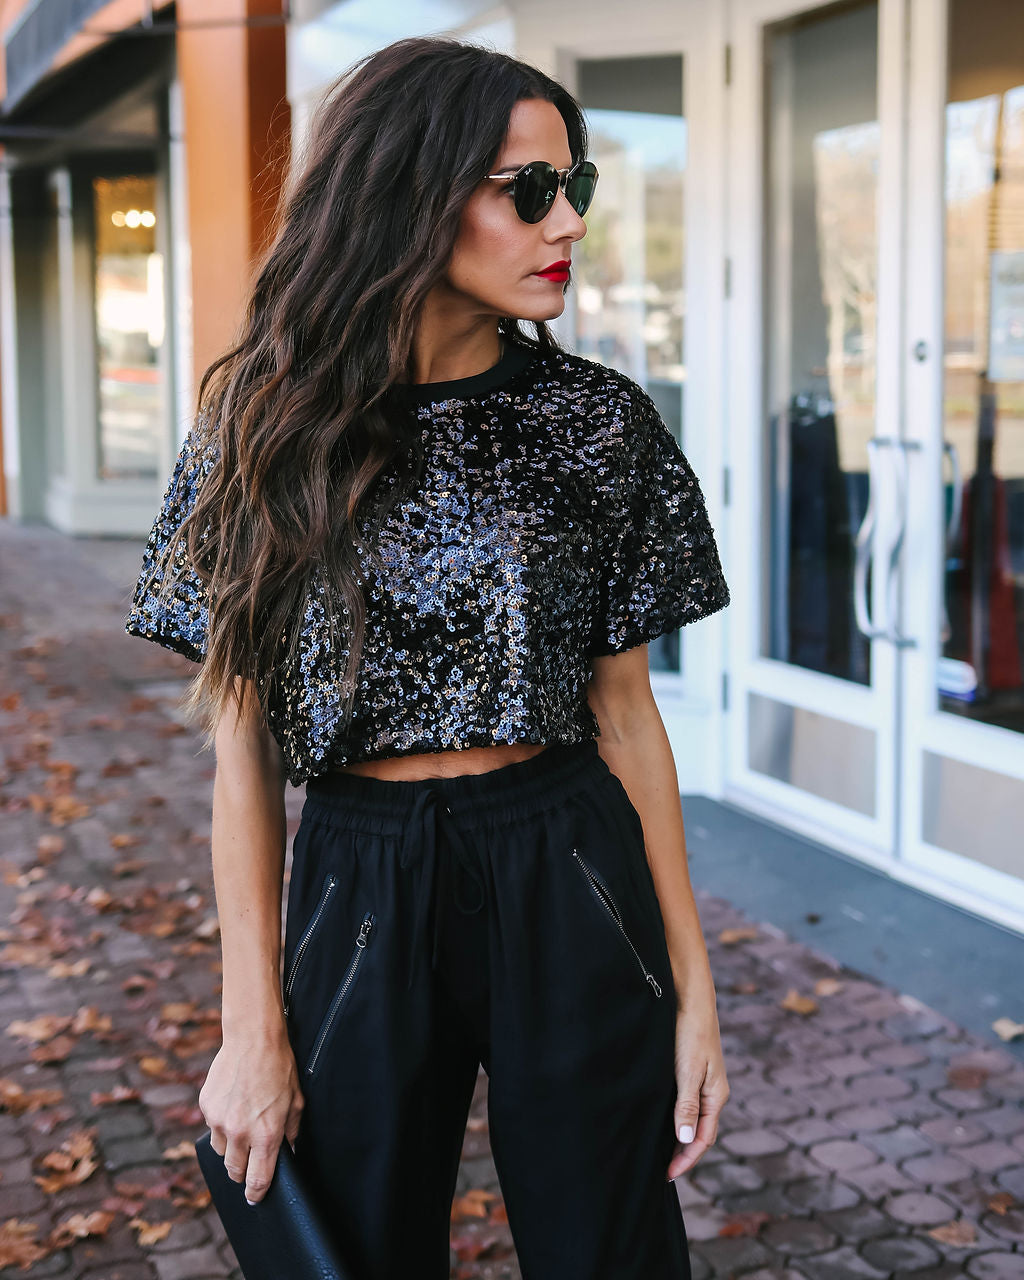 25b29ad7bb1 Bling Bling Sequin Crop Top - Black – VICI